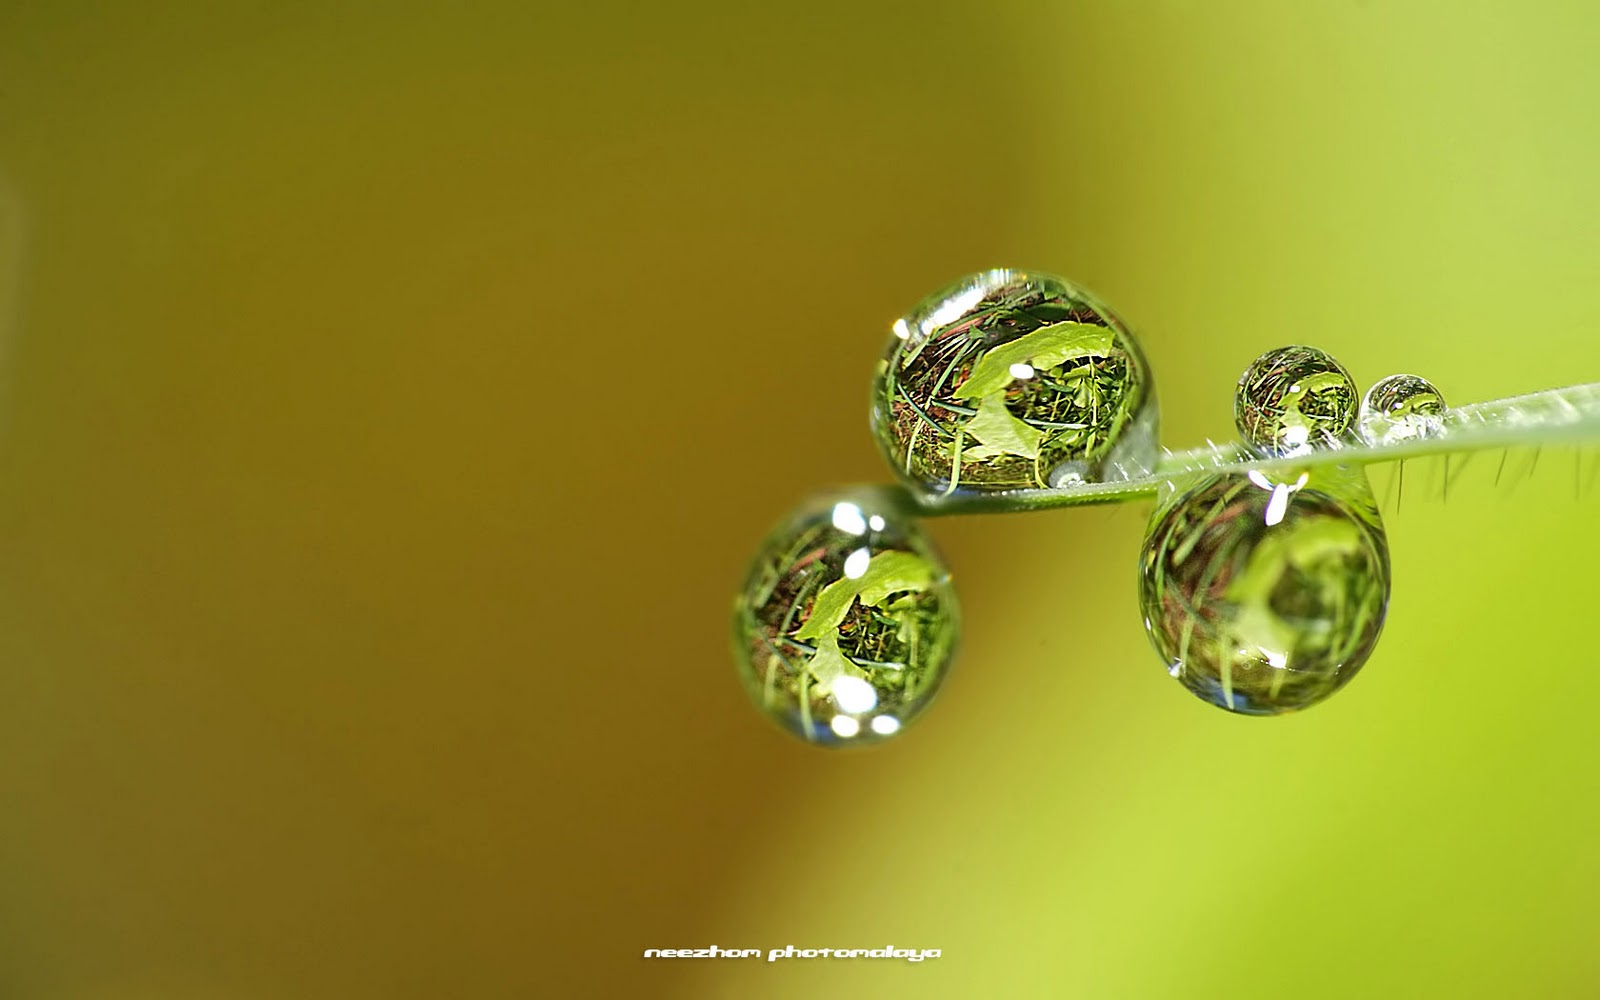 Top and bottom water drops with refraction